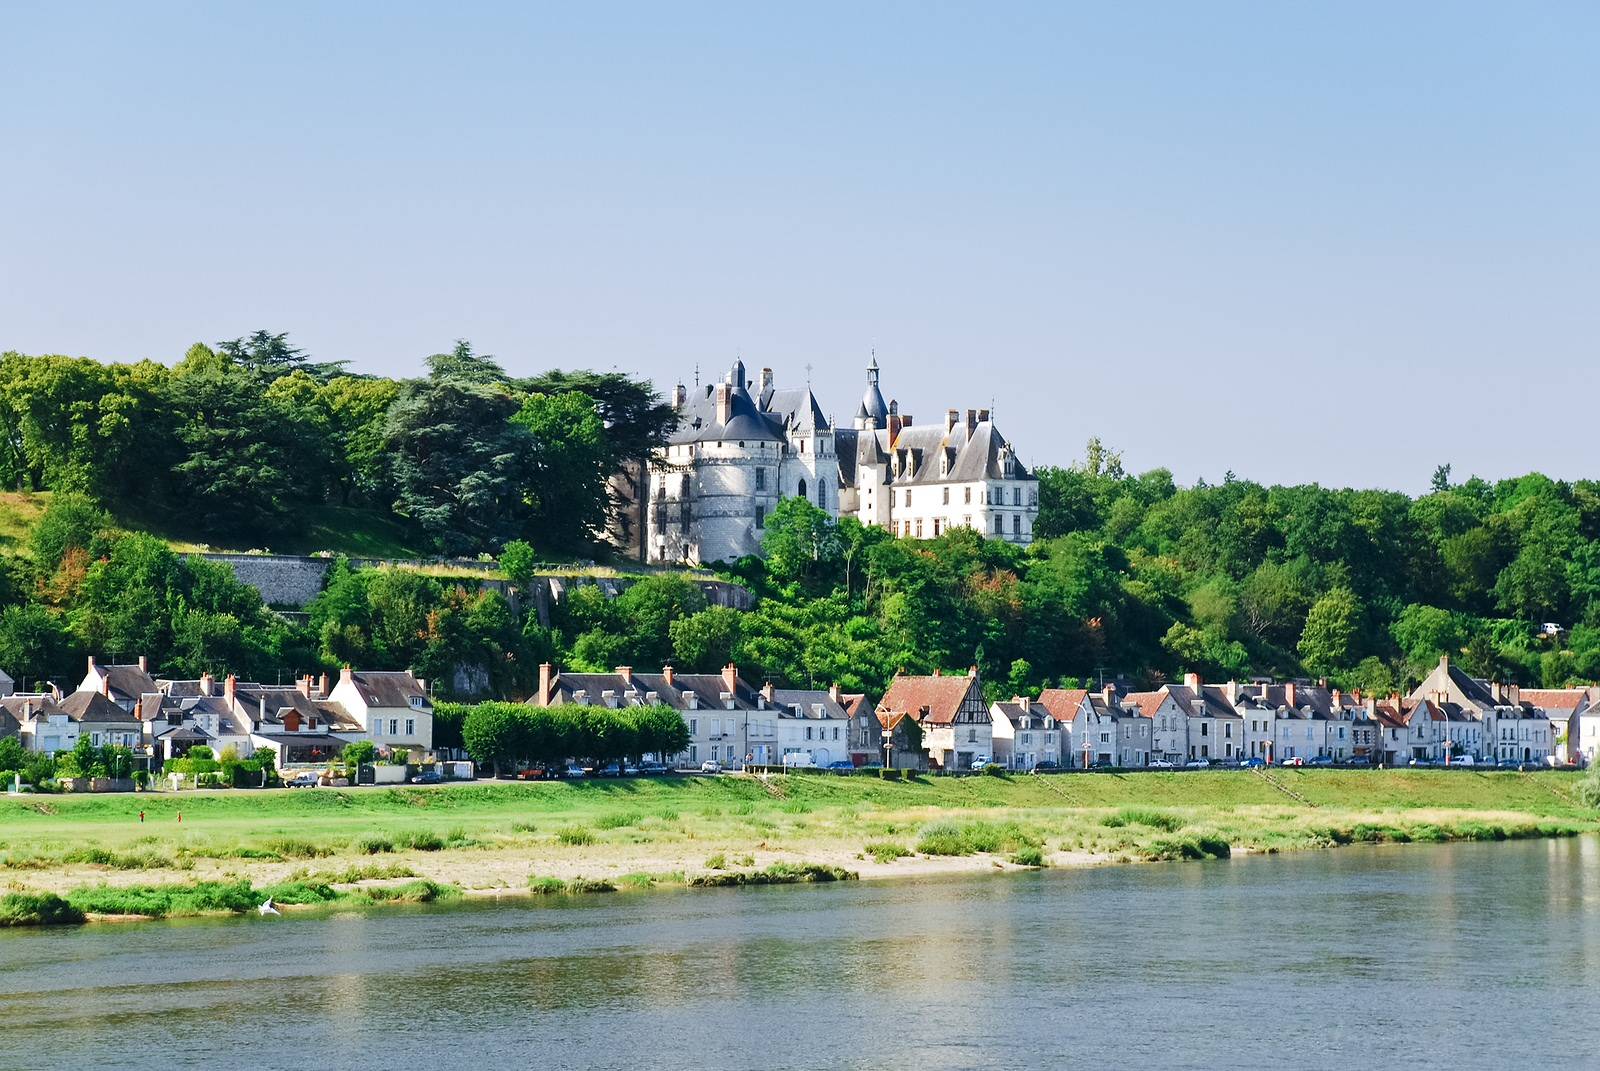 view on castle and town Amboise on the bank of river Loire, France